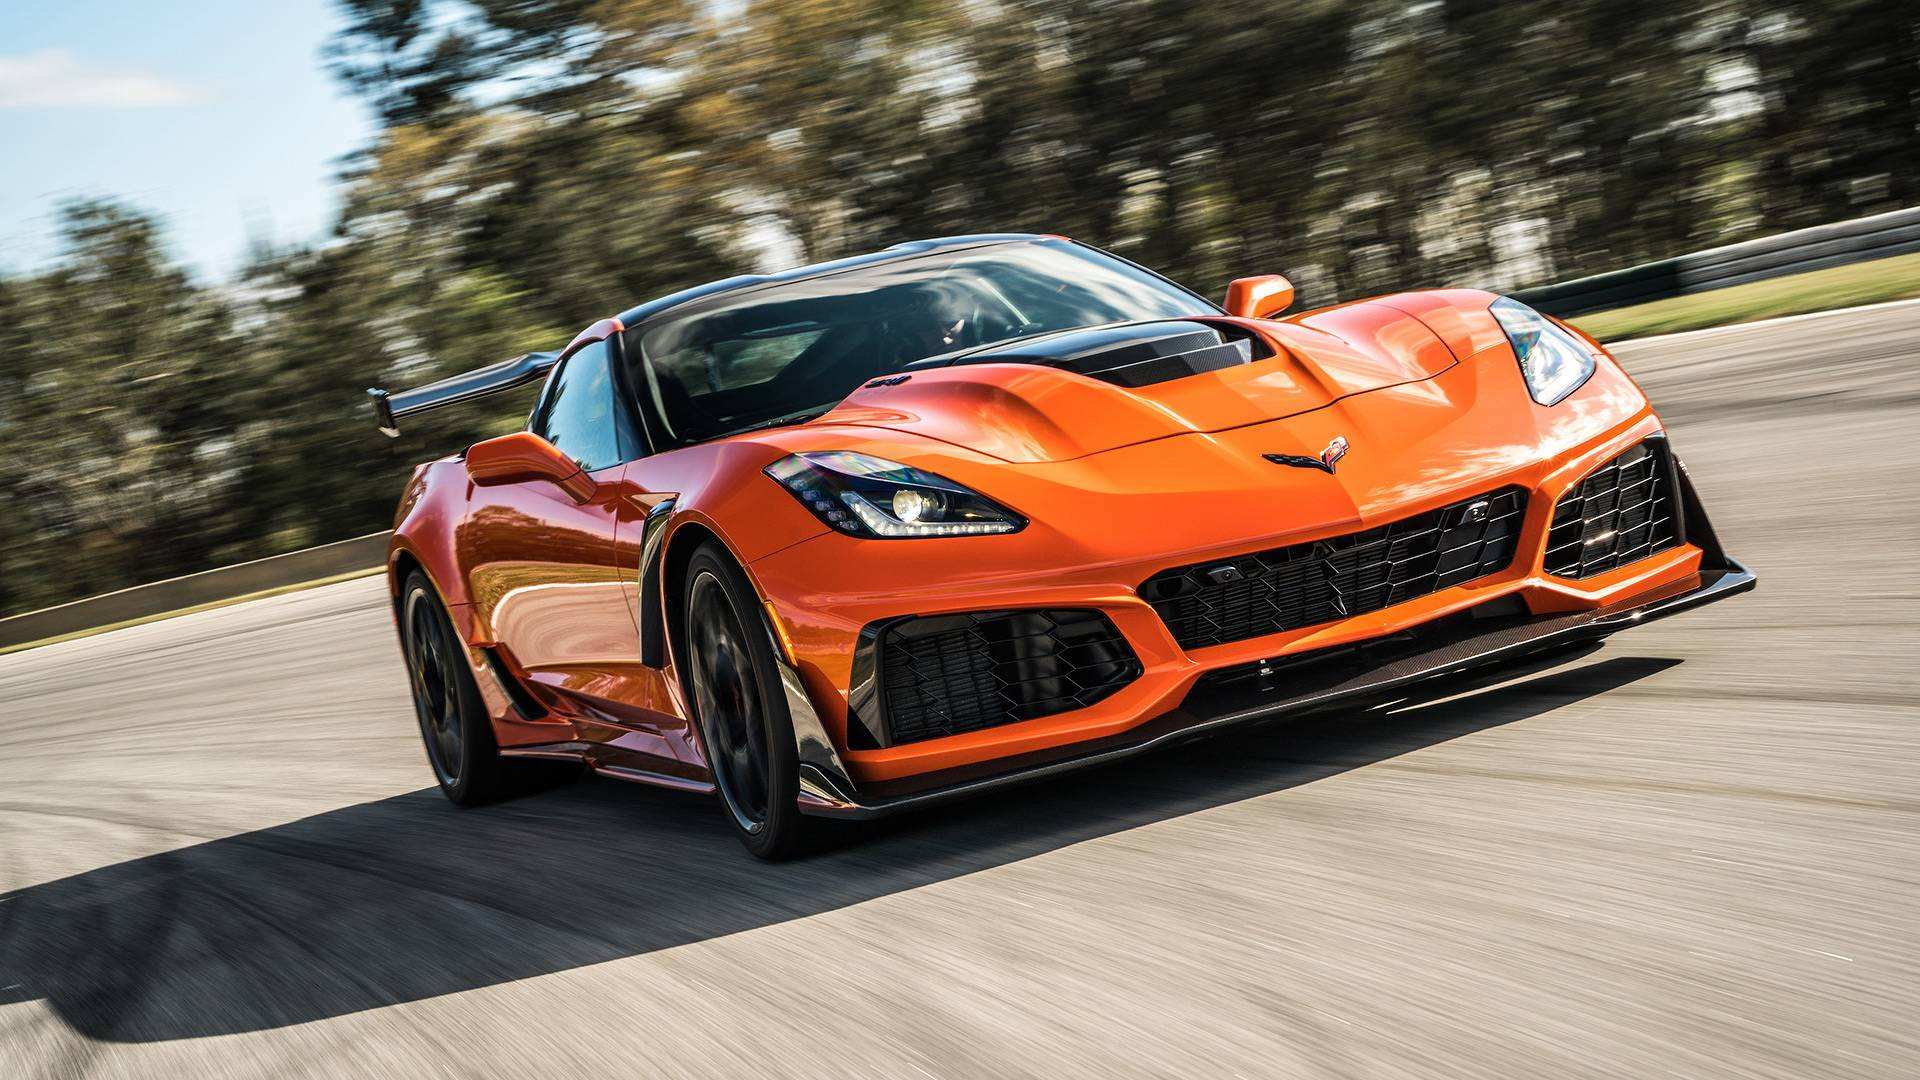 92 The 2019 Chevrolet Corvette Zr1 Specs